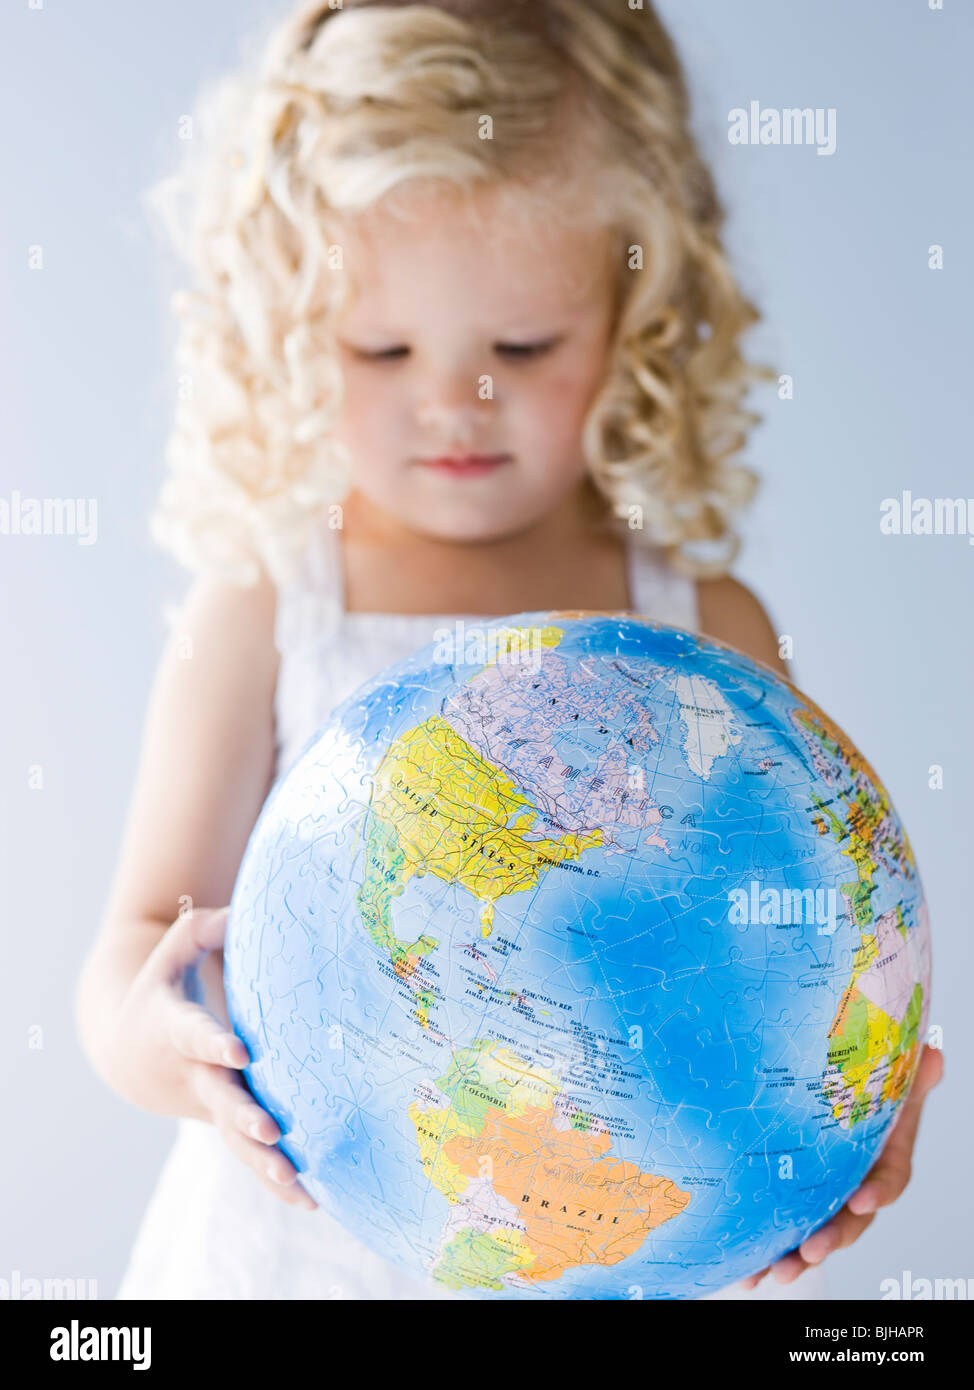 Little girl holding a globe Photo Stock